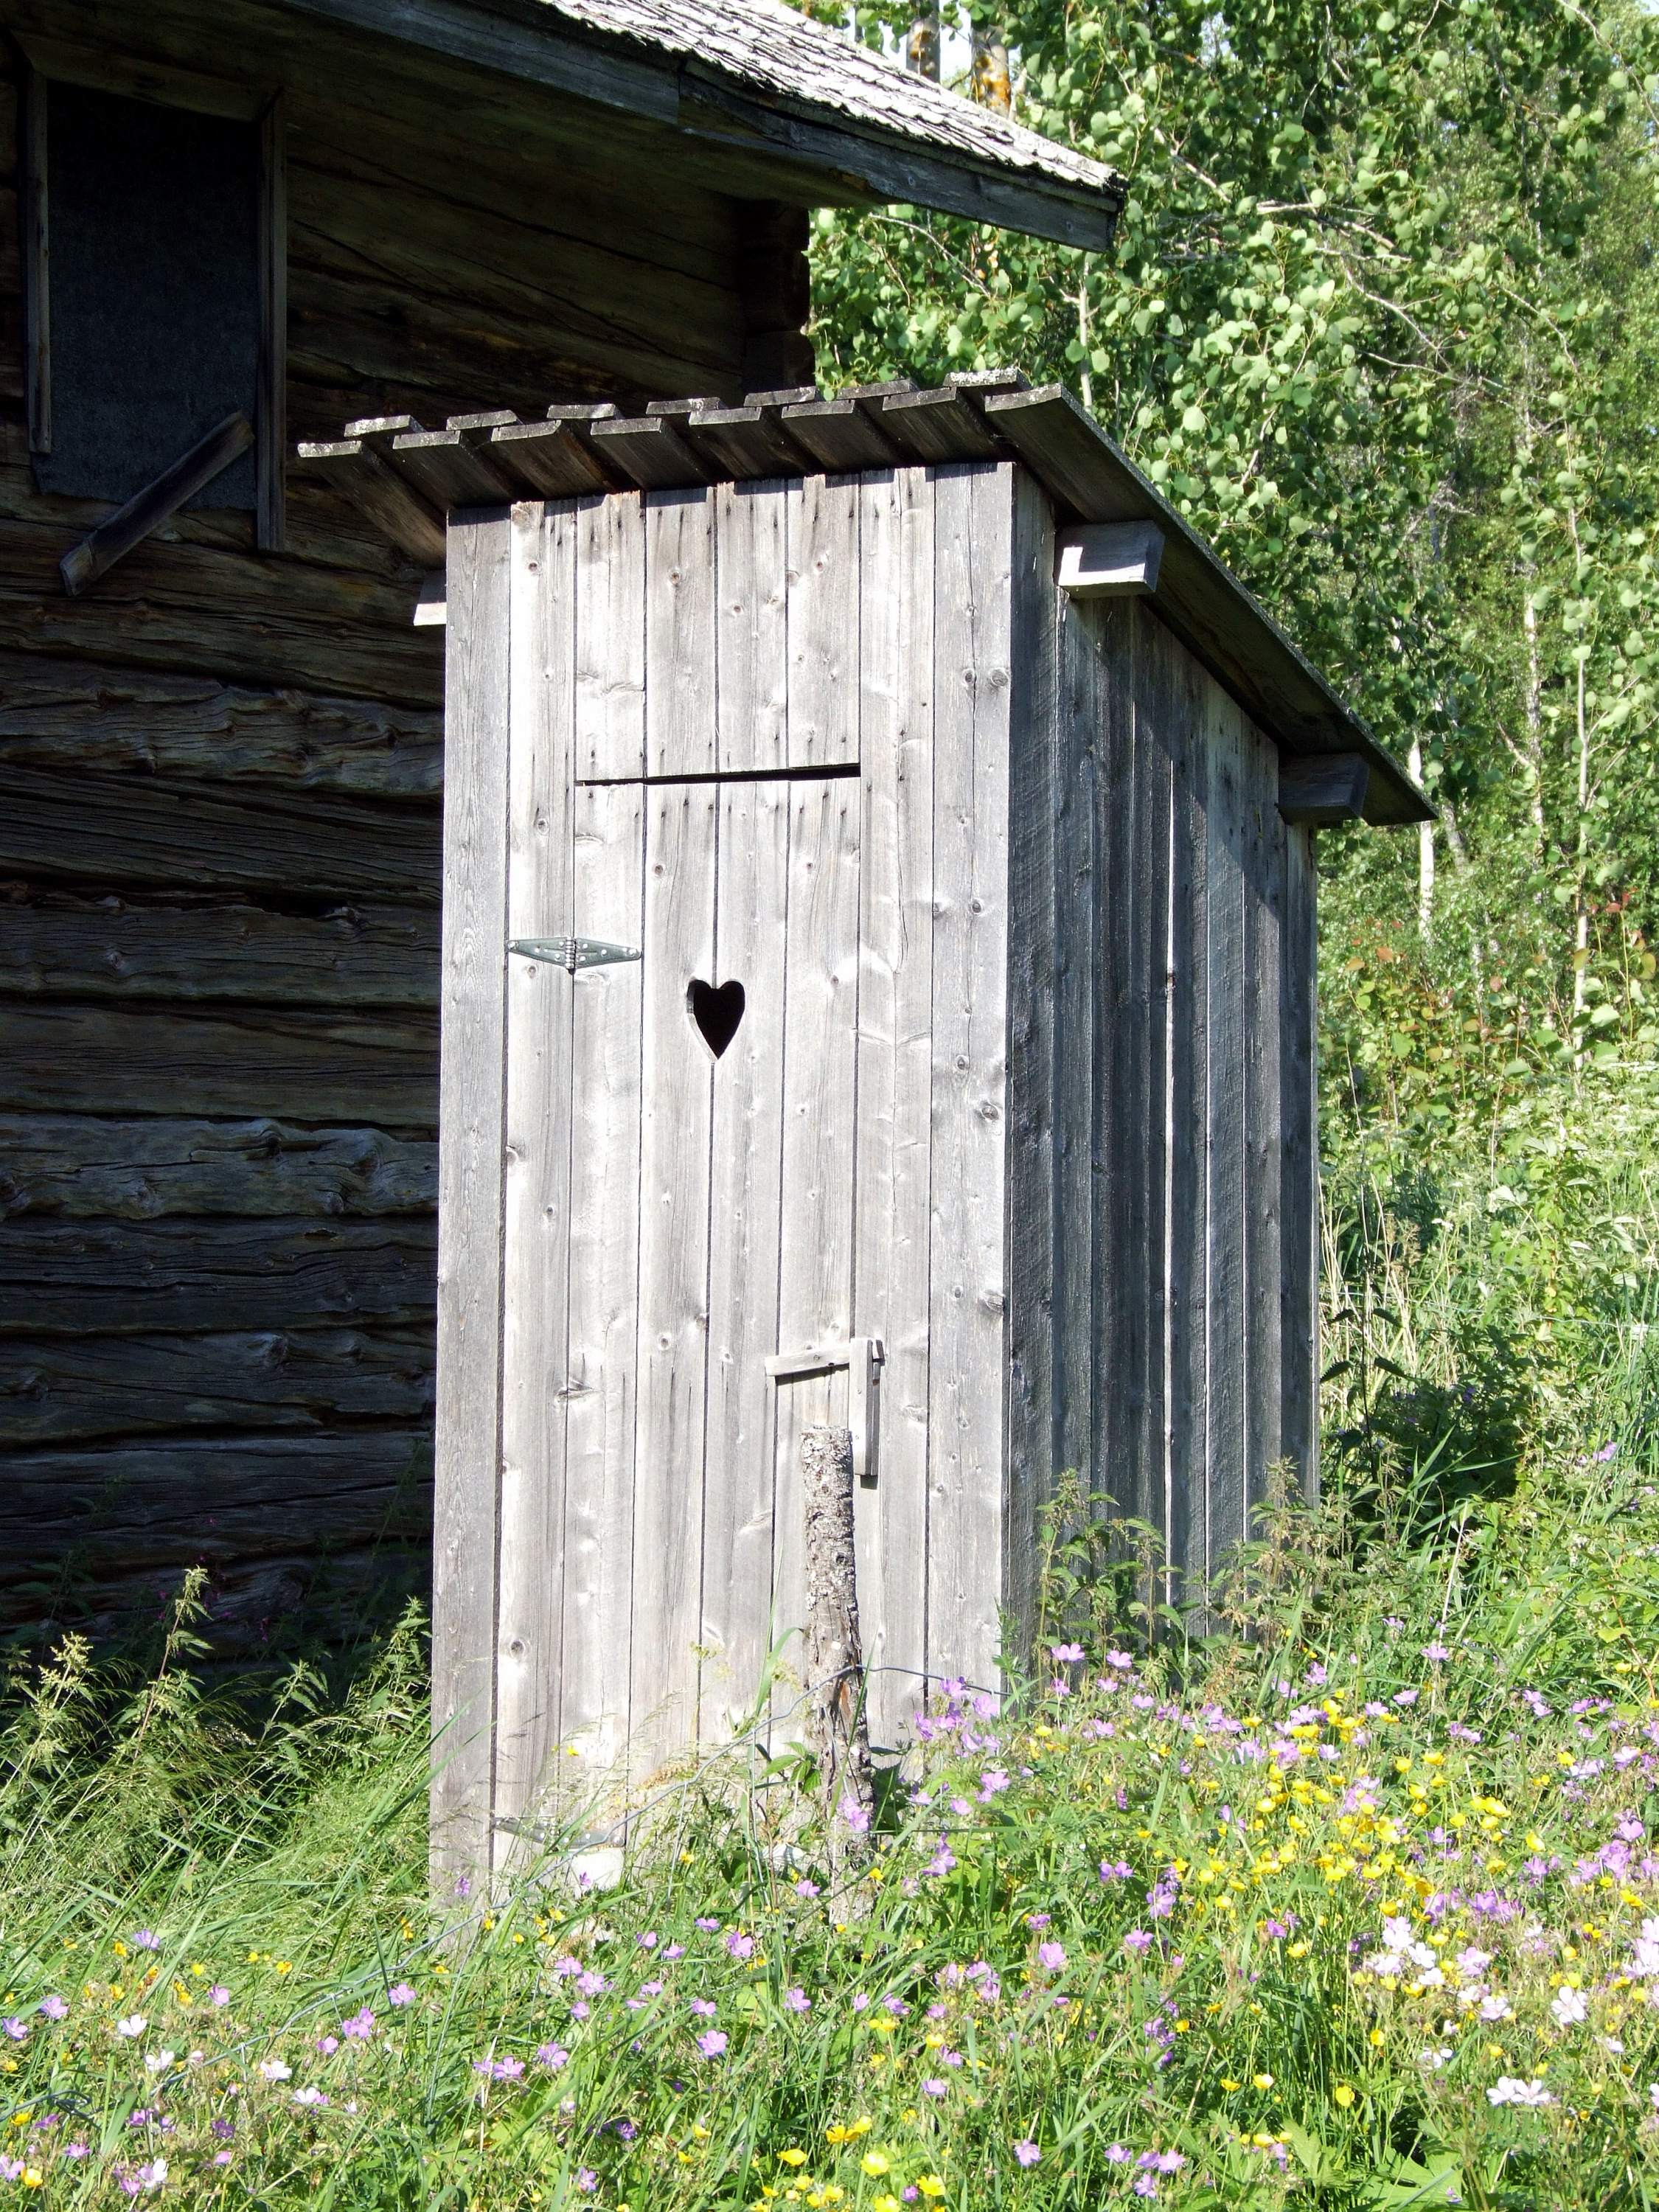 FilePahnila Outhouse Simo JPG Wikimedia Commons - Outhouse bathroom